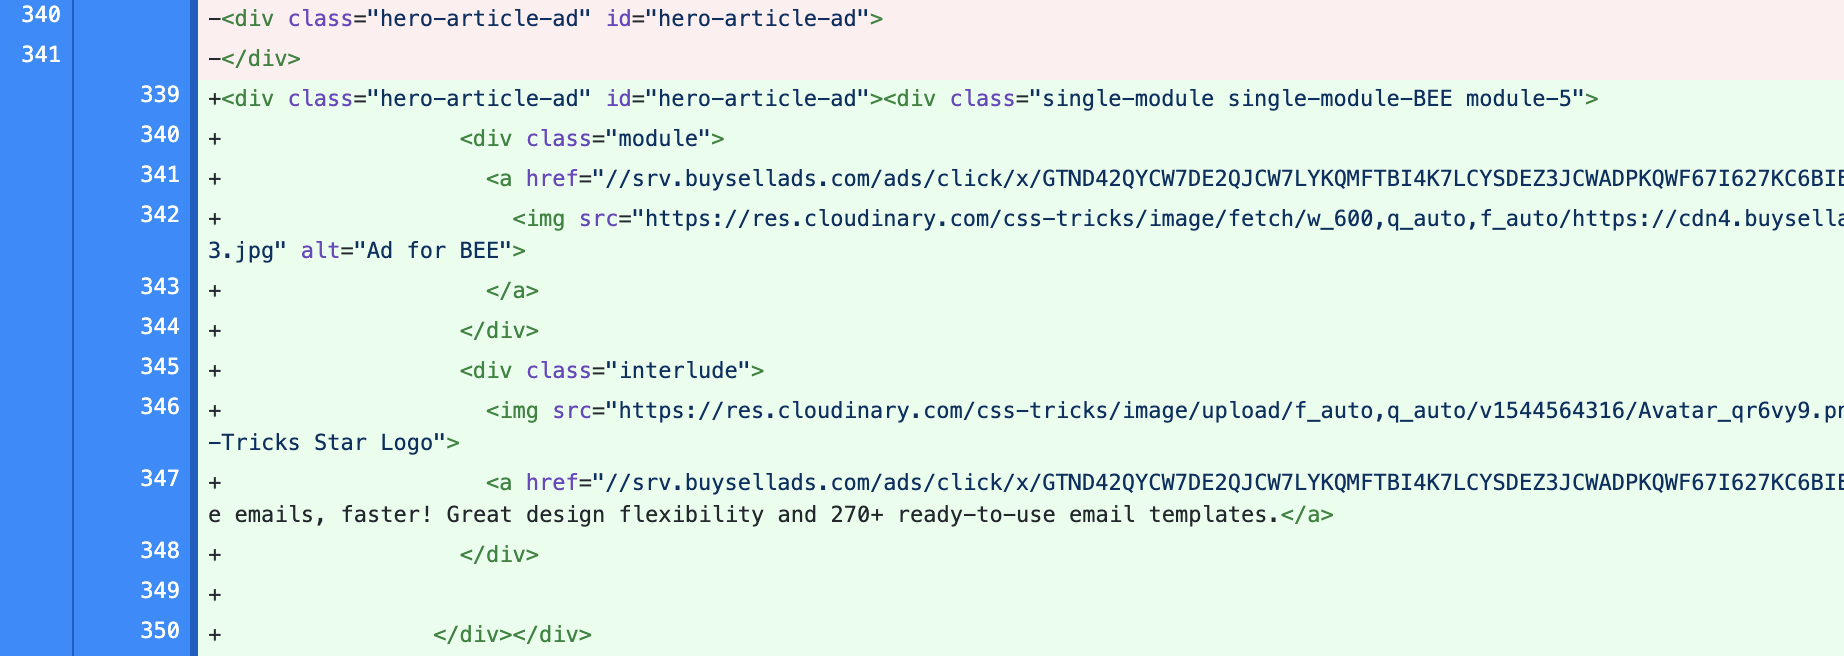 Screenshot of file diff showing ads being injected in initial HTML placeholder.